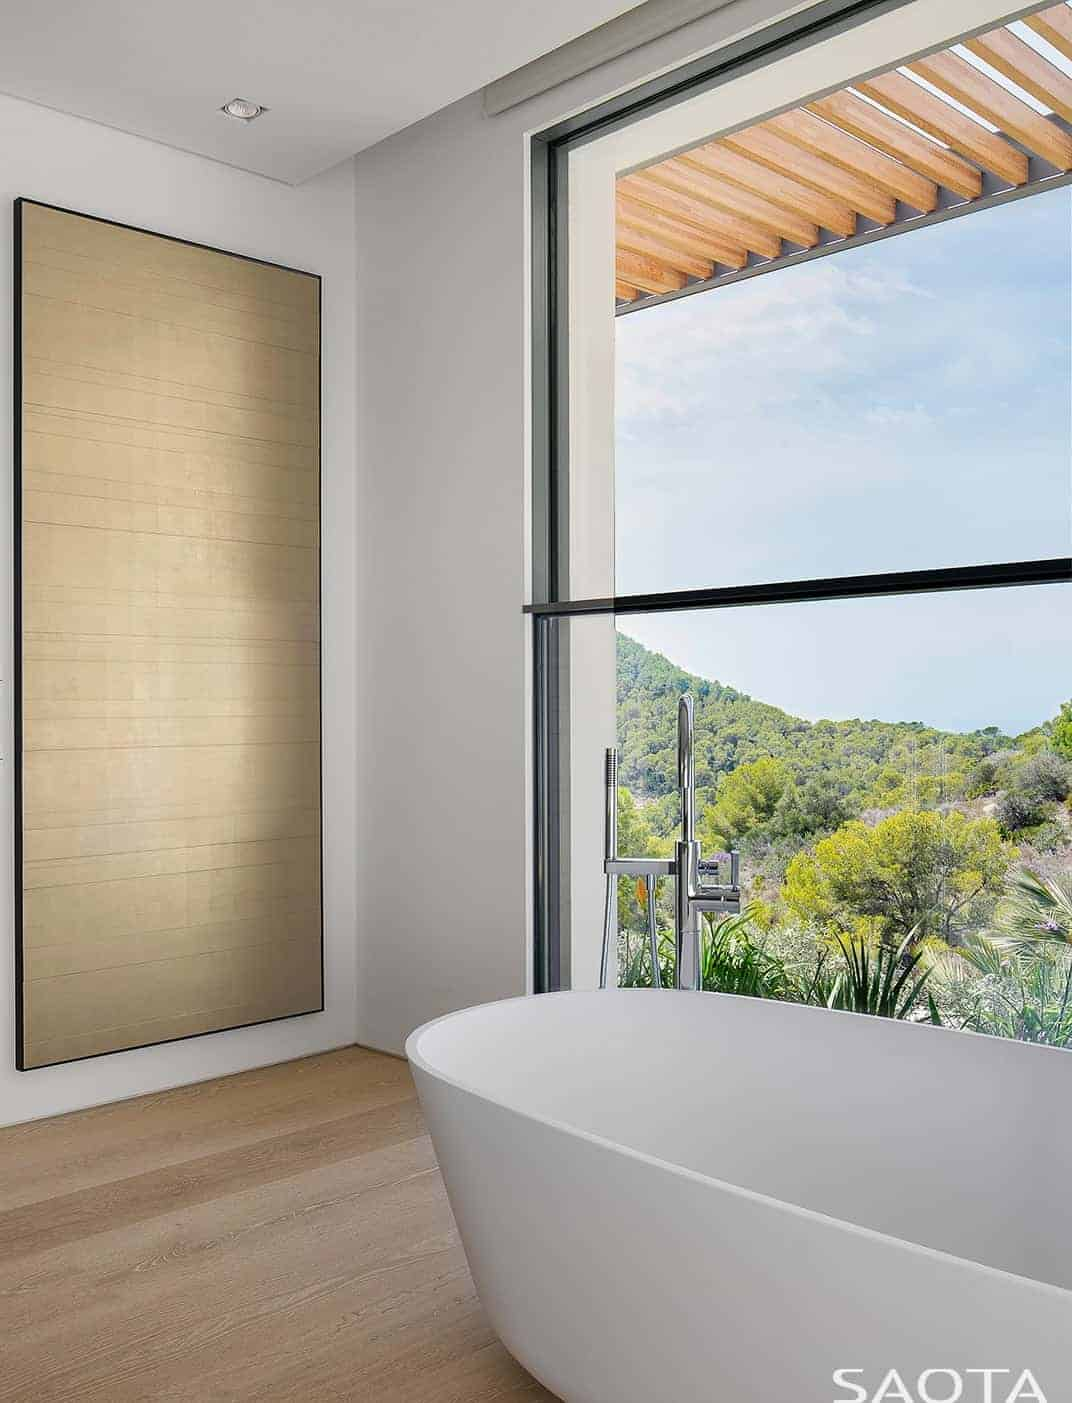 Small white bathroom showcases a freestanding bathtub that sits on light hardwood flooring. It is across a panoramic window overlooking a serene outdoor view.